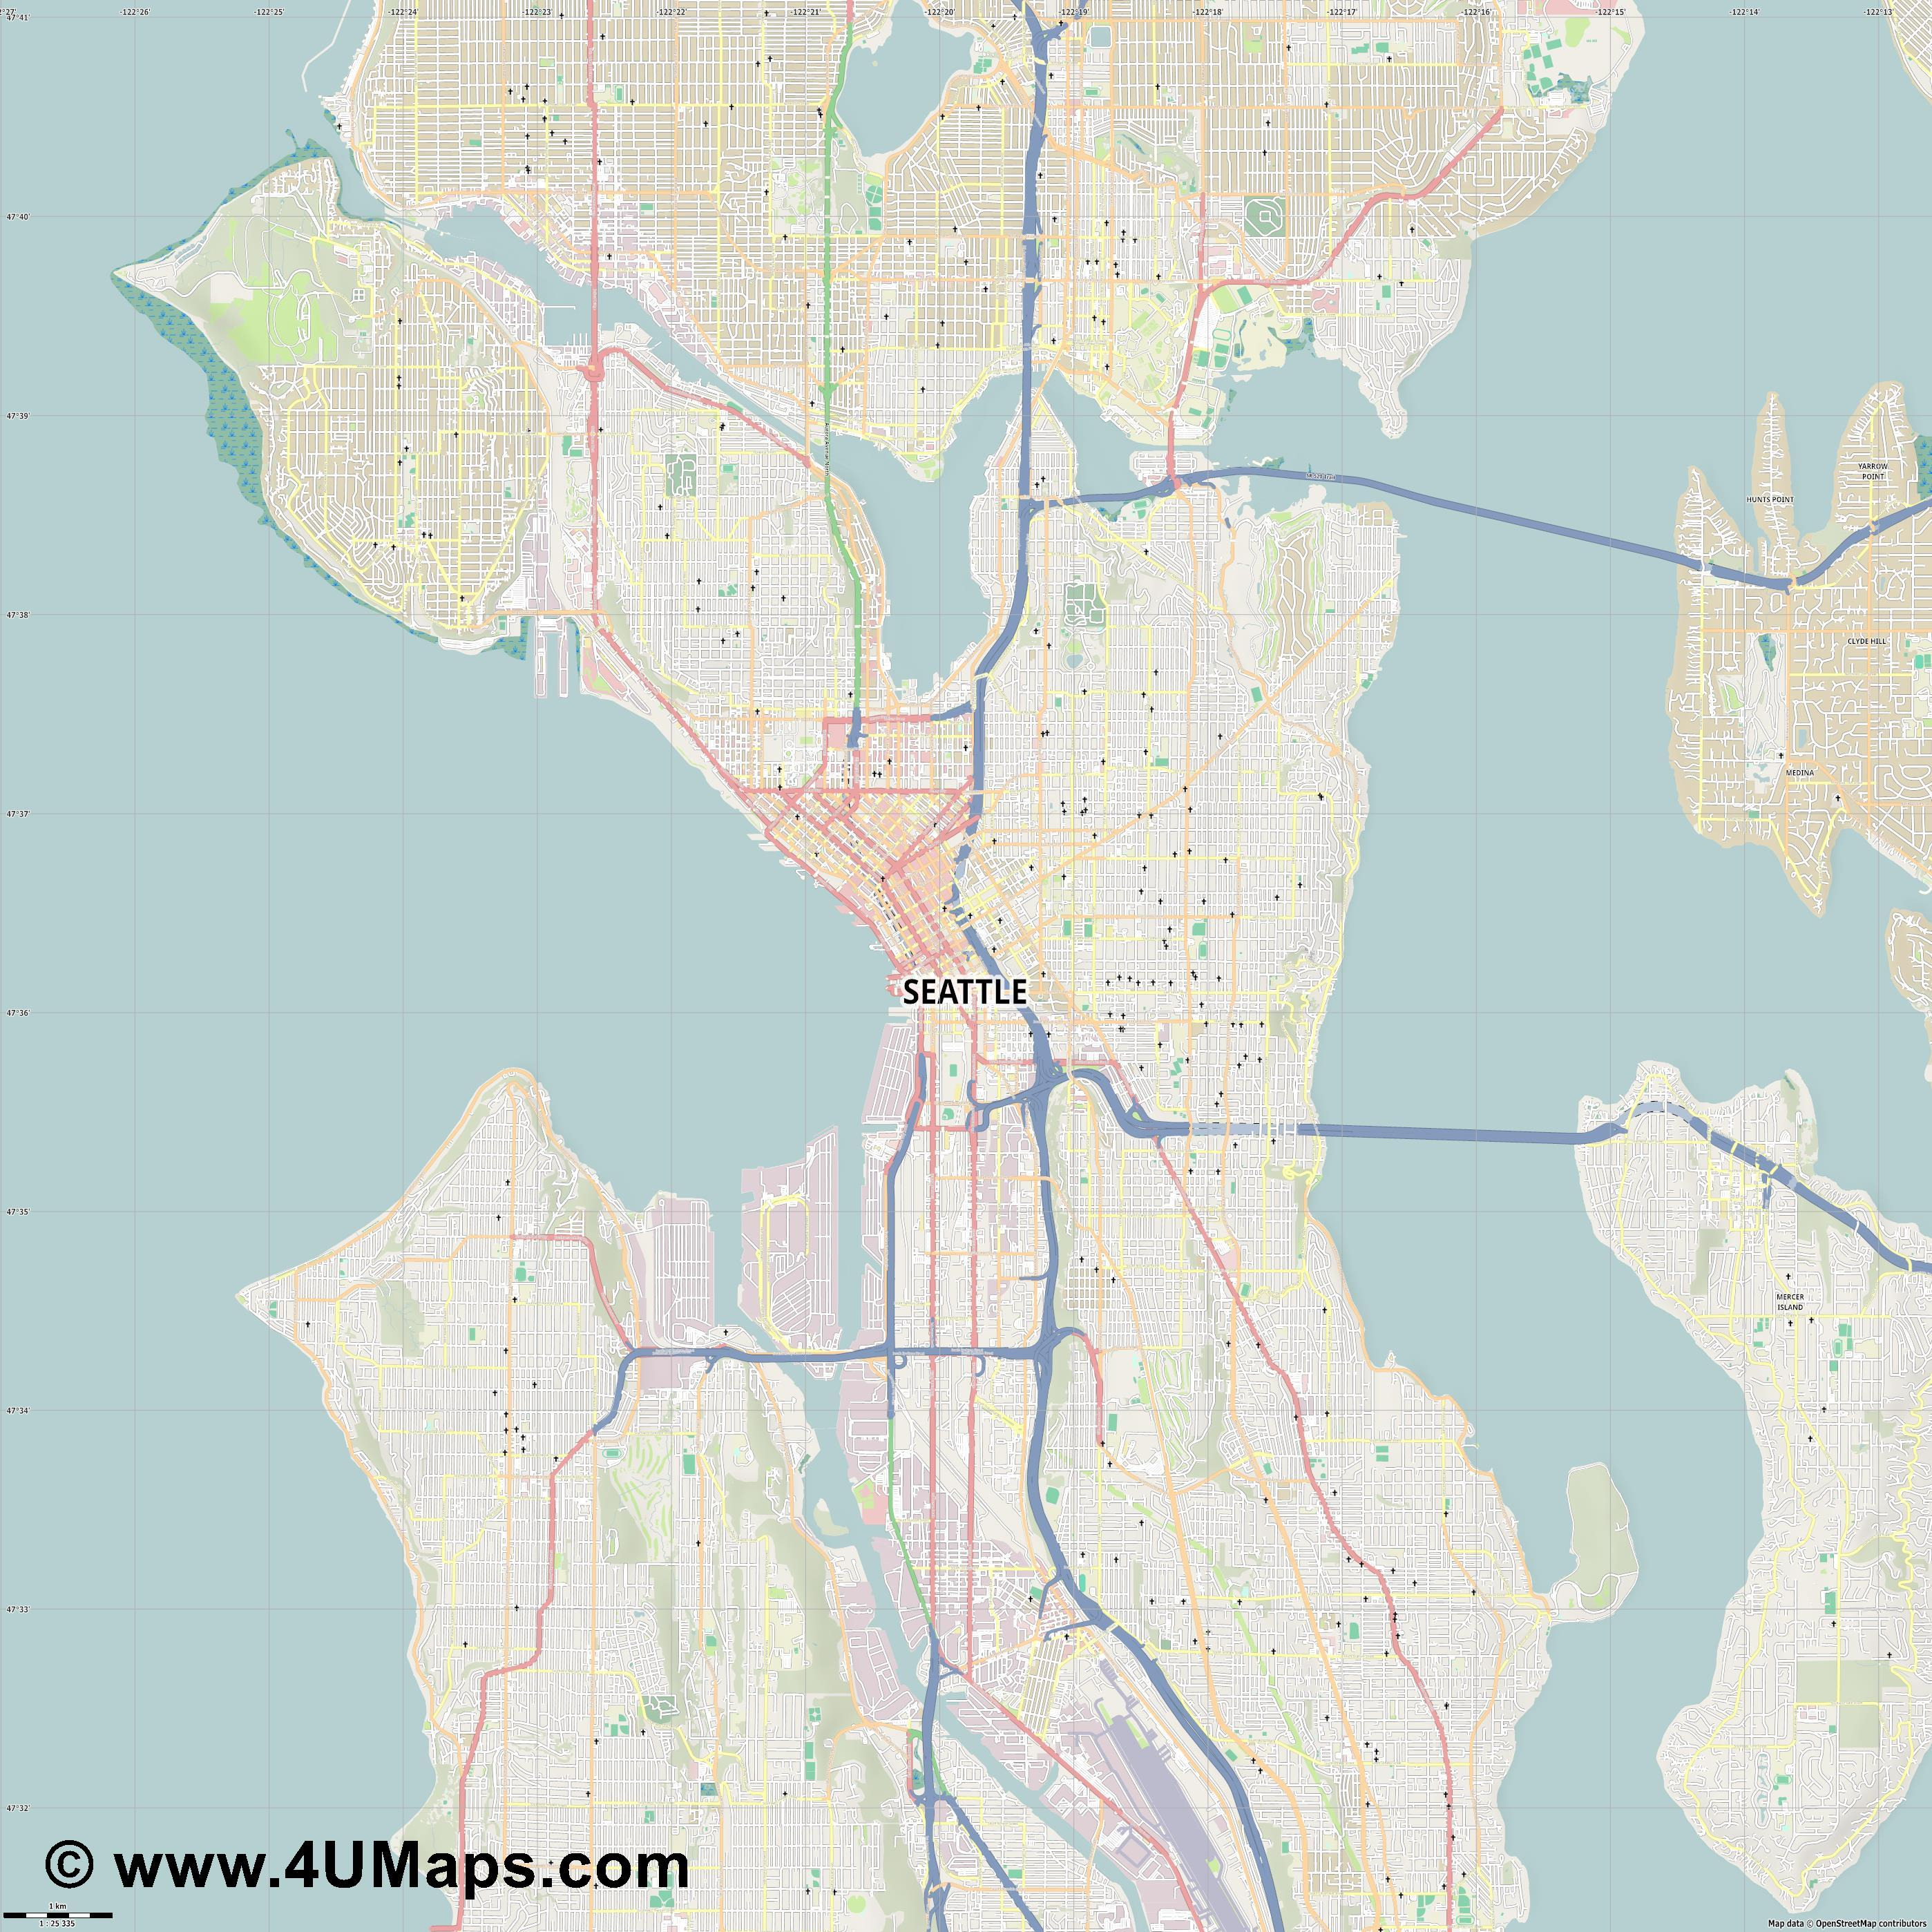 Seattle  jpg high detail, large area preview vector city map